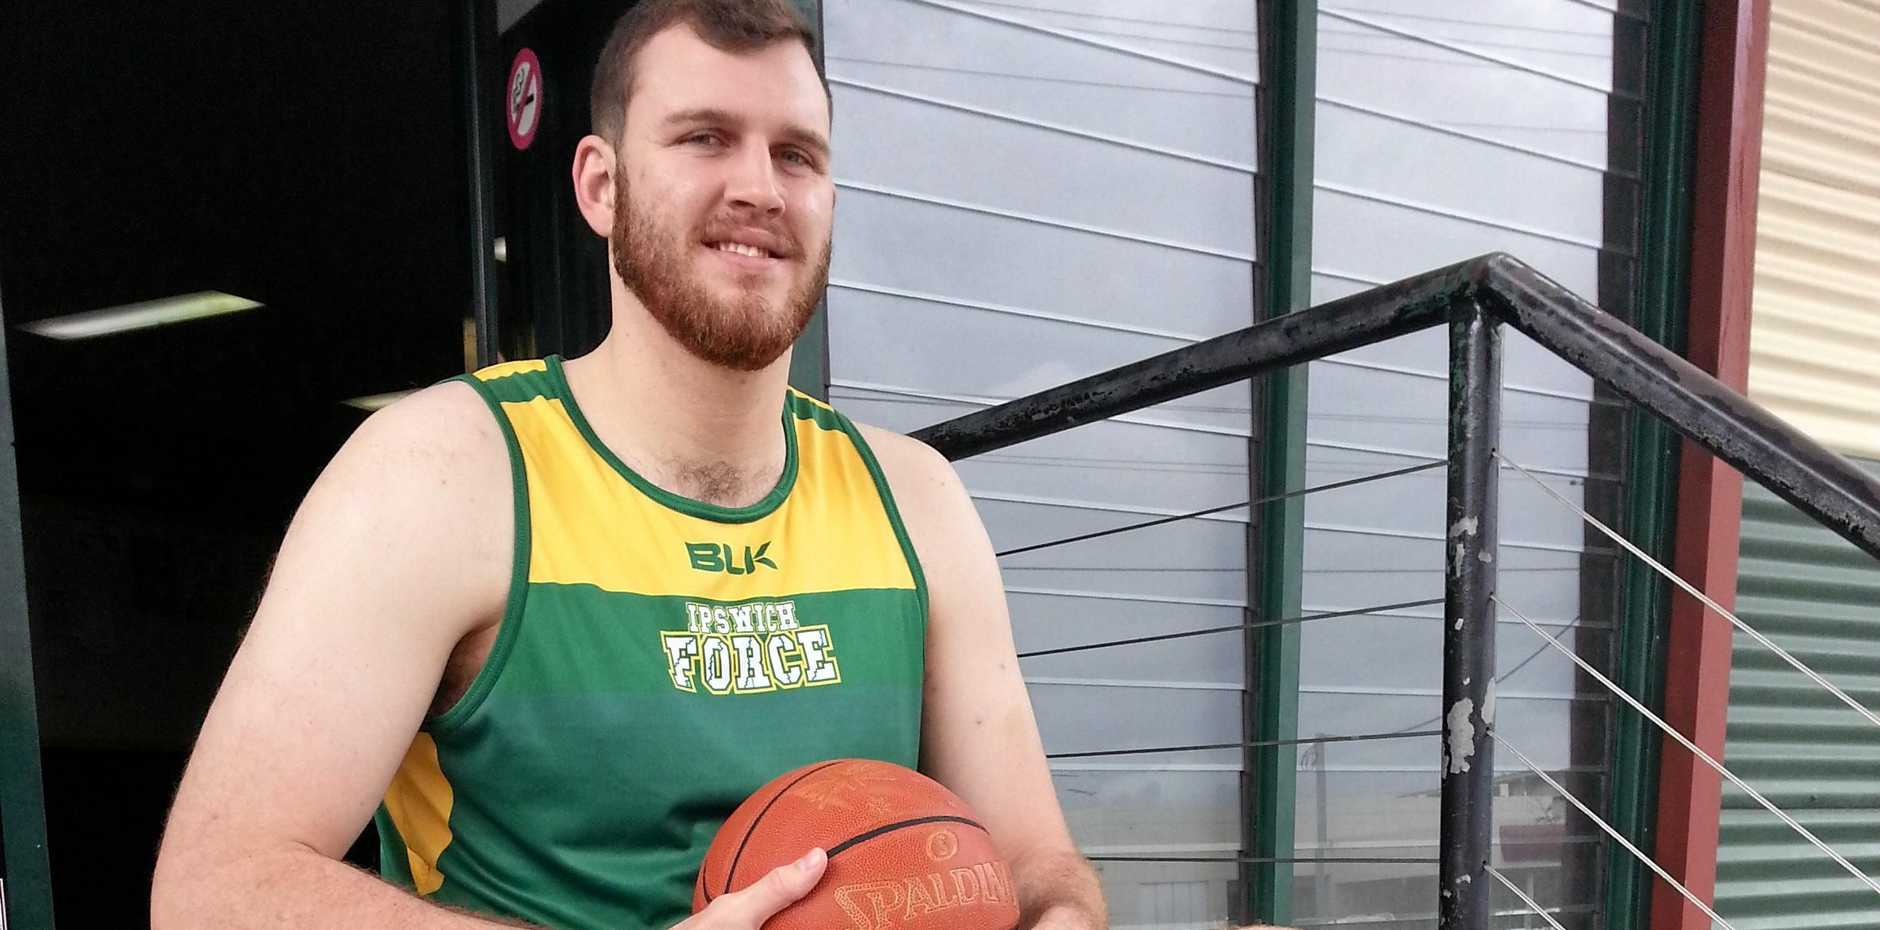 STEPPING UP: Ipswich Force QBL recruit Joe Owens is ready to help his new team develop a winning culture in the state league.